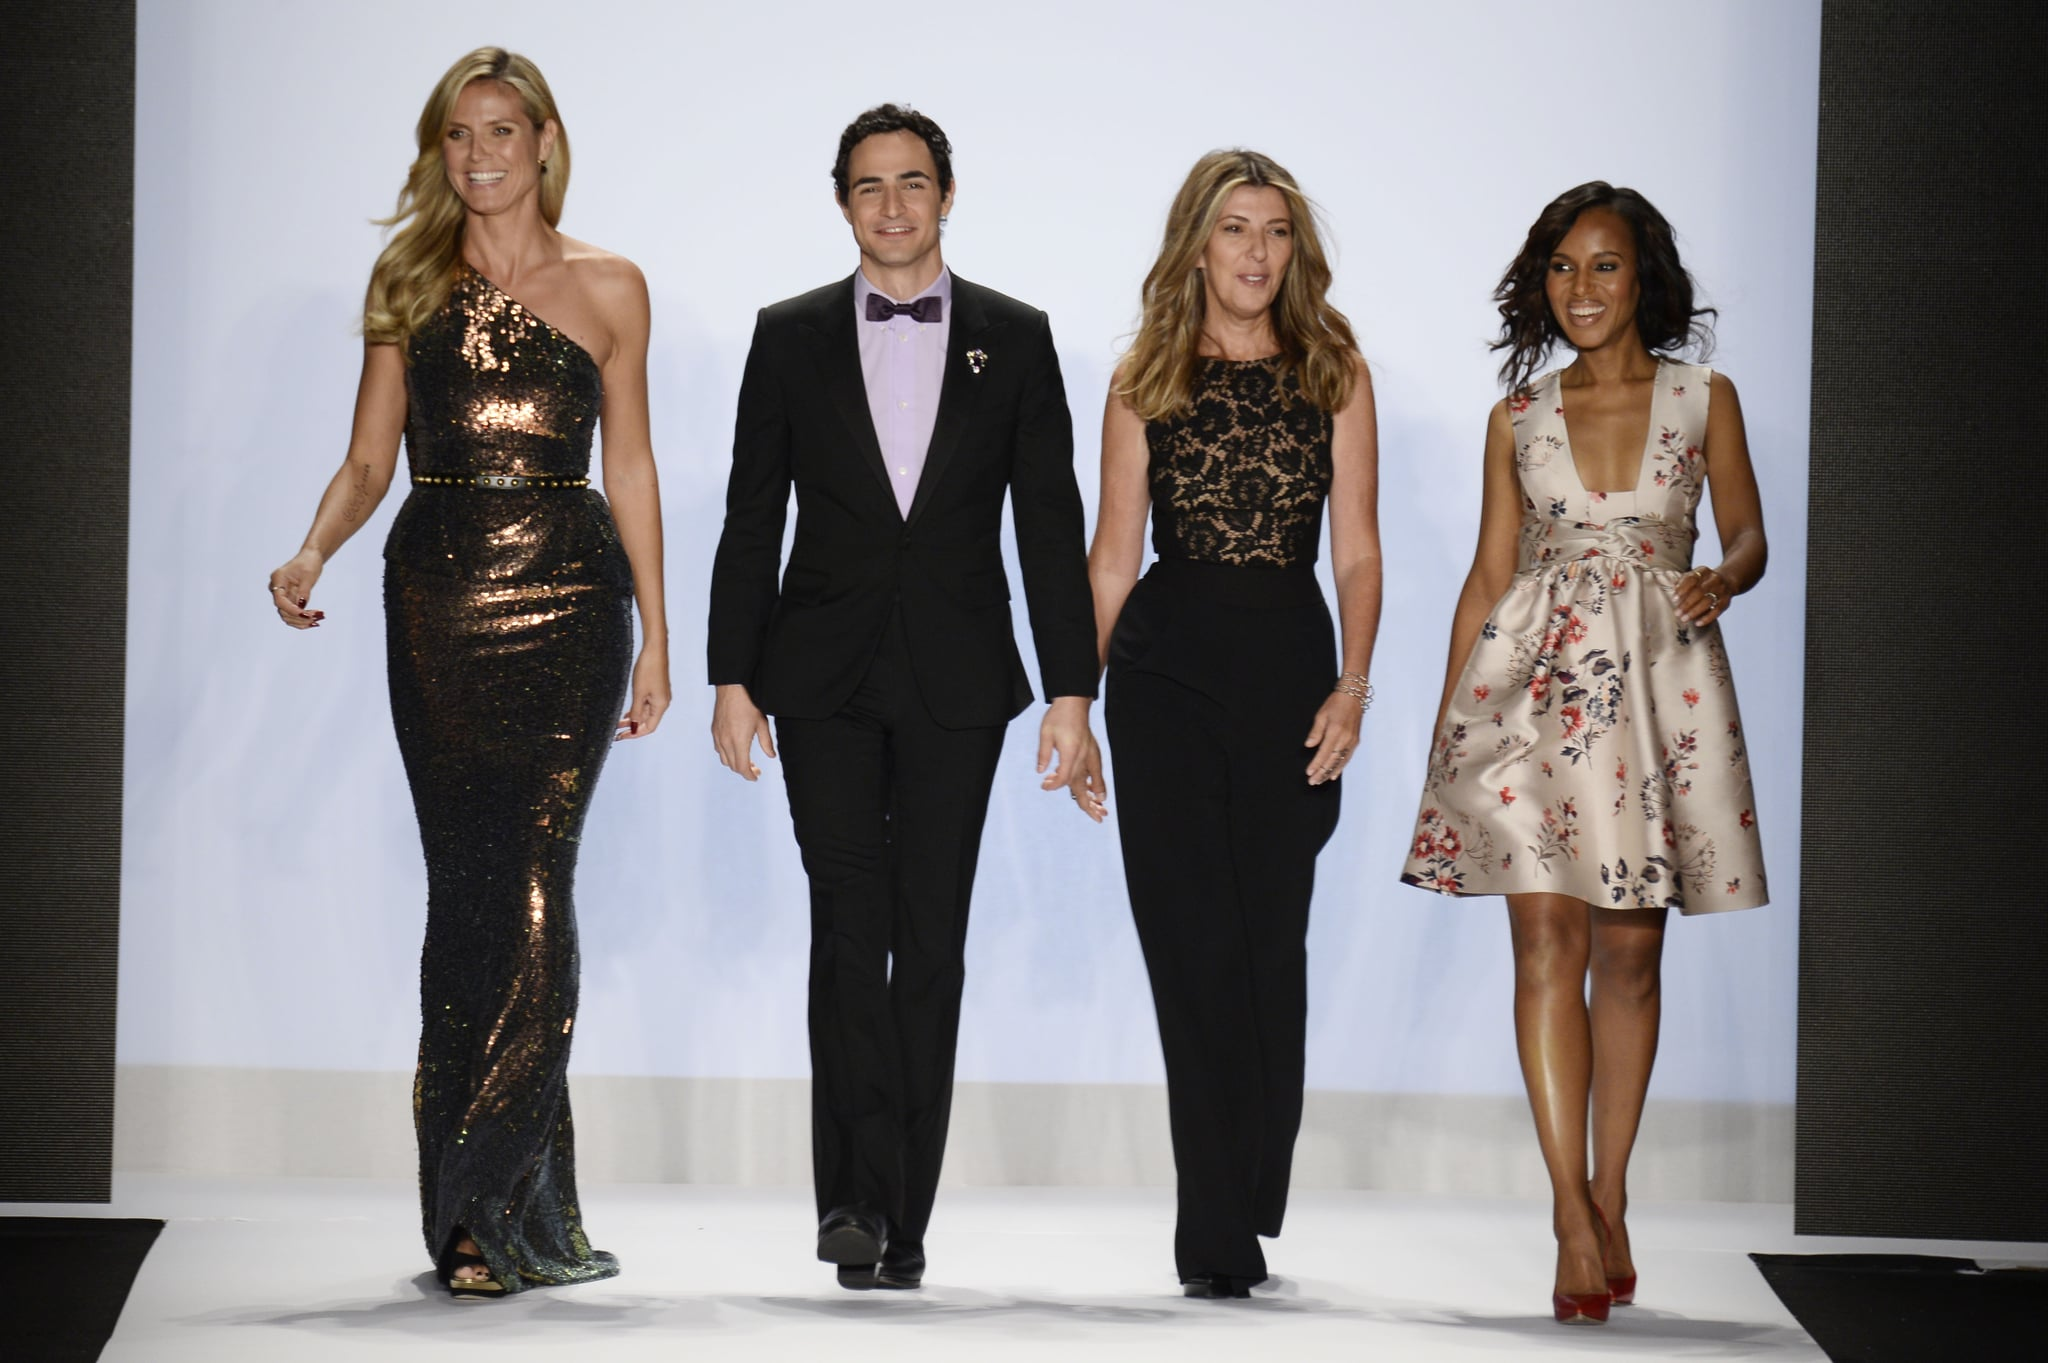 Heidi Klum was joined by her Project Runway guest judges Zac Posen, Nina Garcia, and Kerry Washington for the show's finale presentation on Friday.